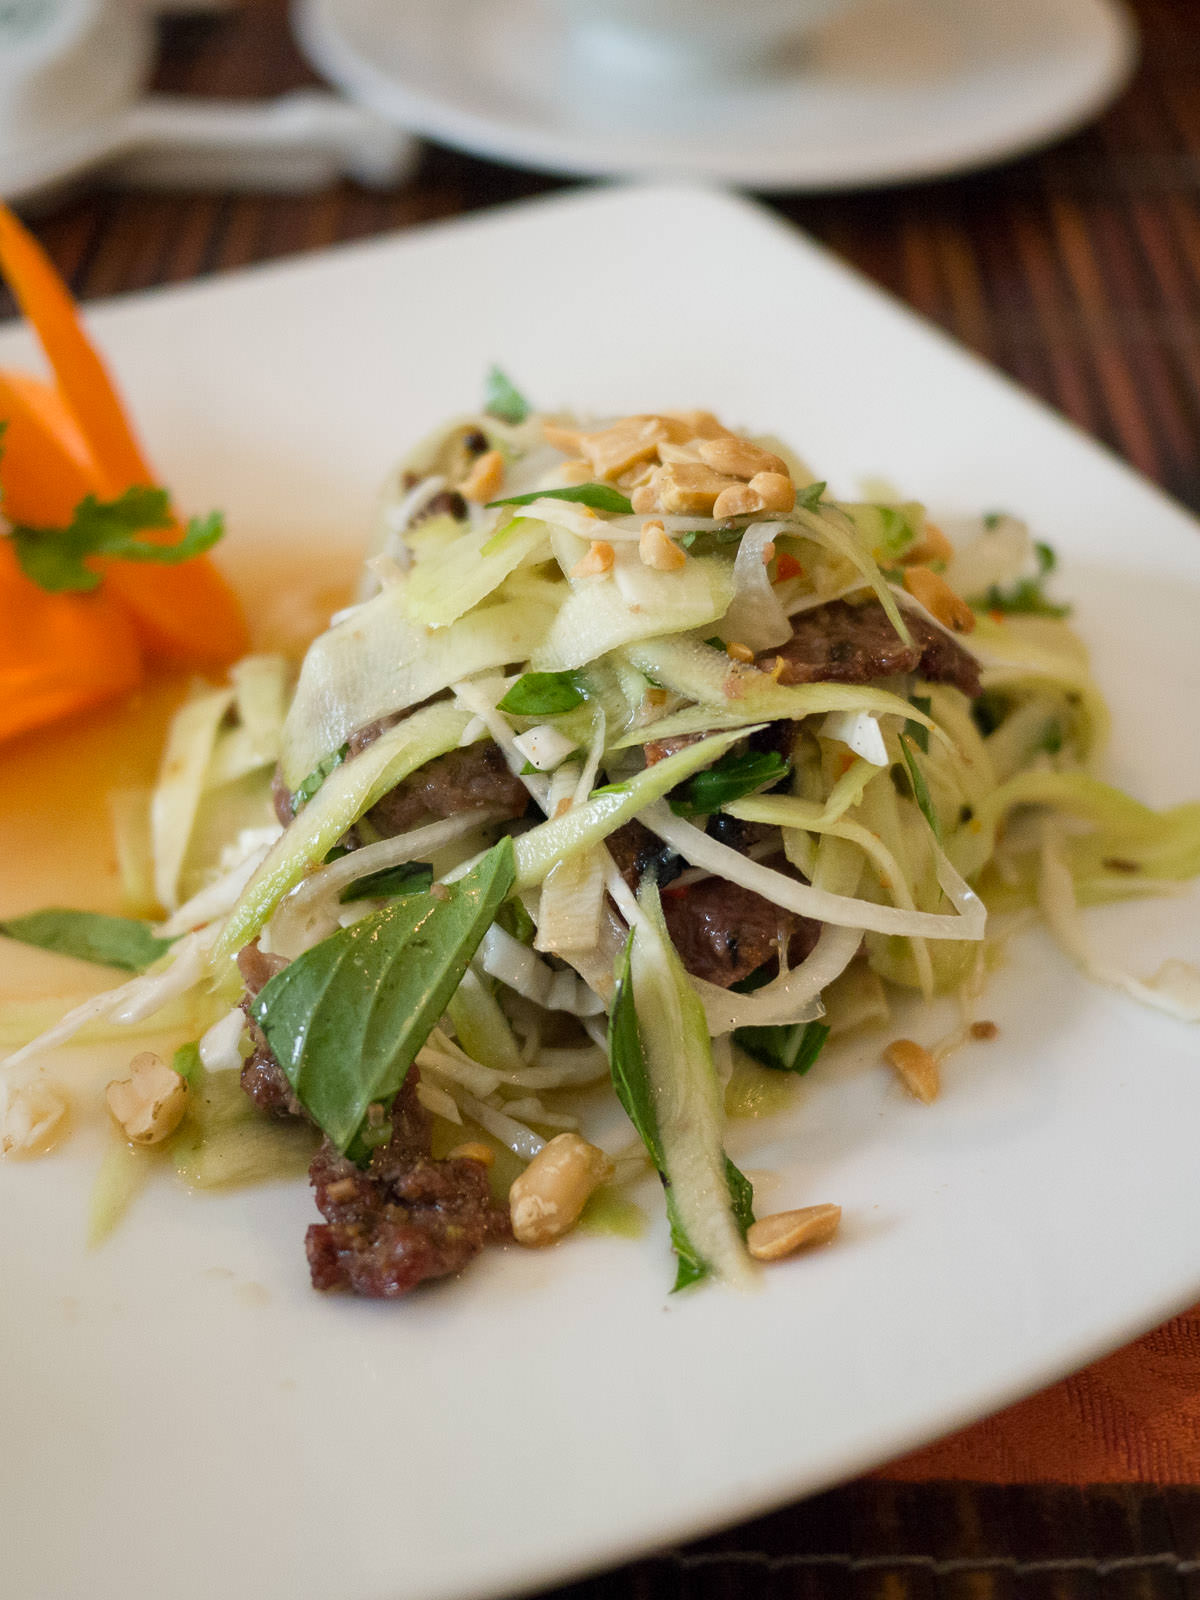 Mango salad with grilled beef